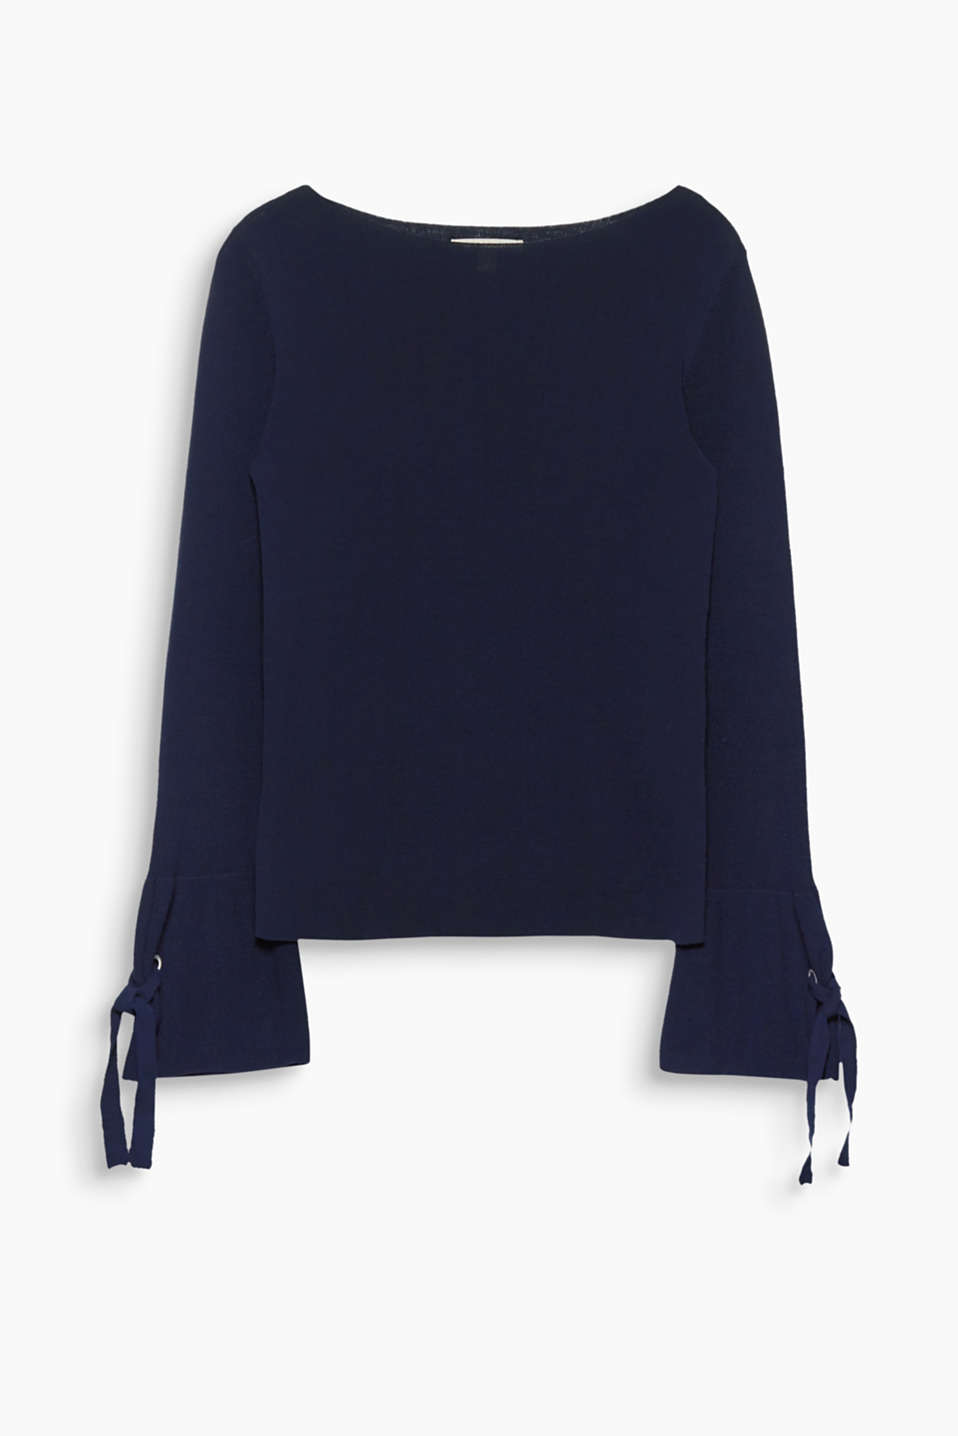 Trumpet sleeves add feminine flair! The bows on this cotton jumper take it to a whole new level!